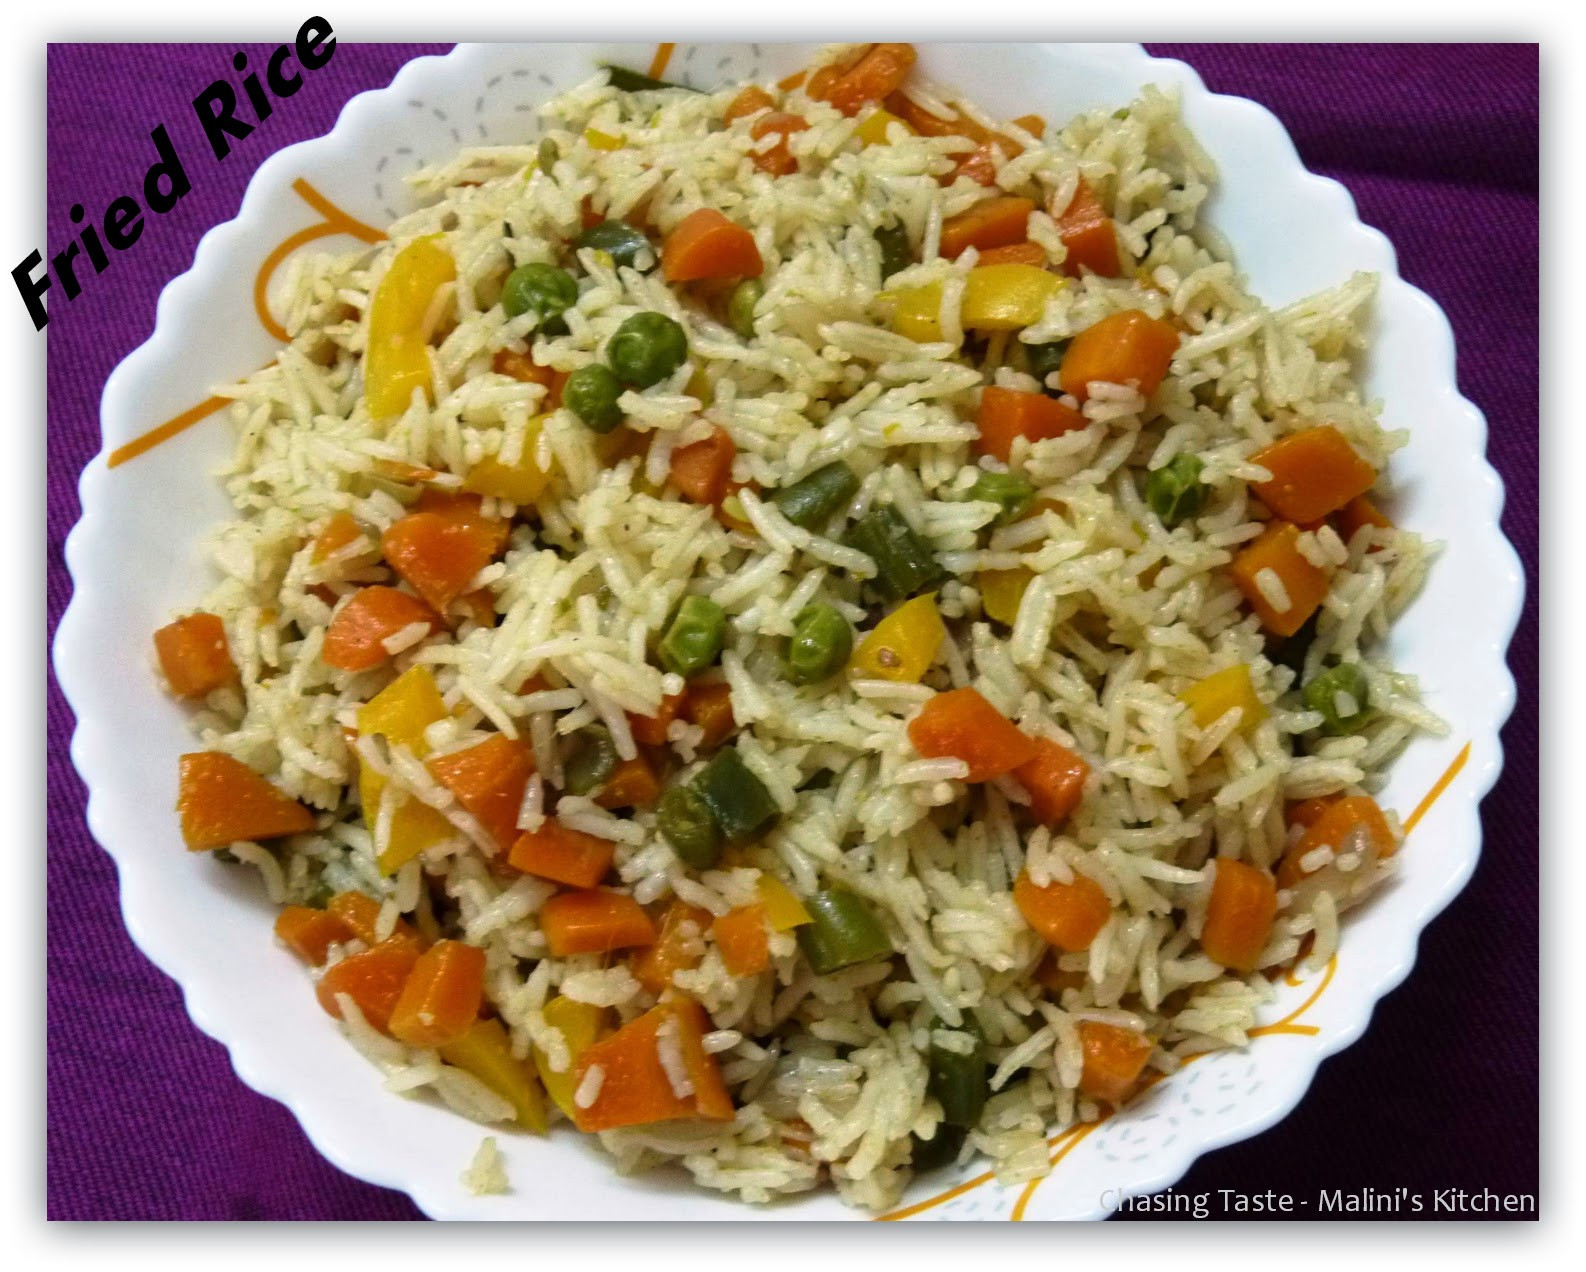 Fried Rice Recipe Indian  Chasing Taste Ve able Fried Rice Recipe Indian Style